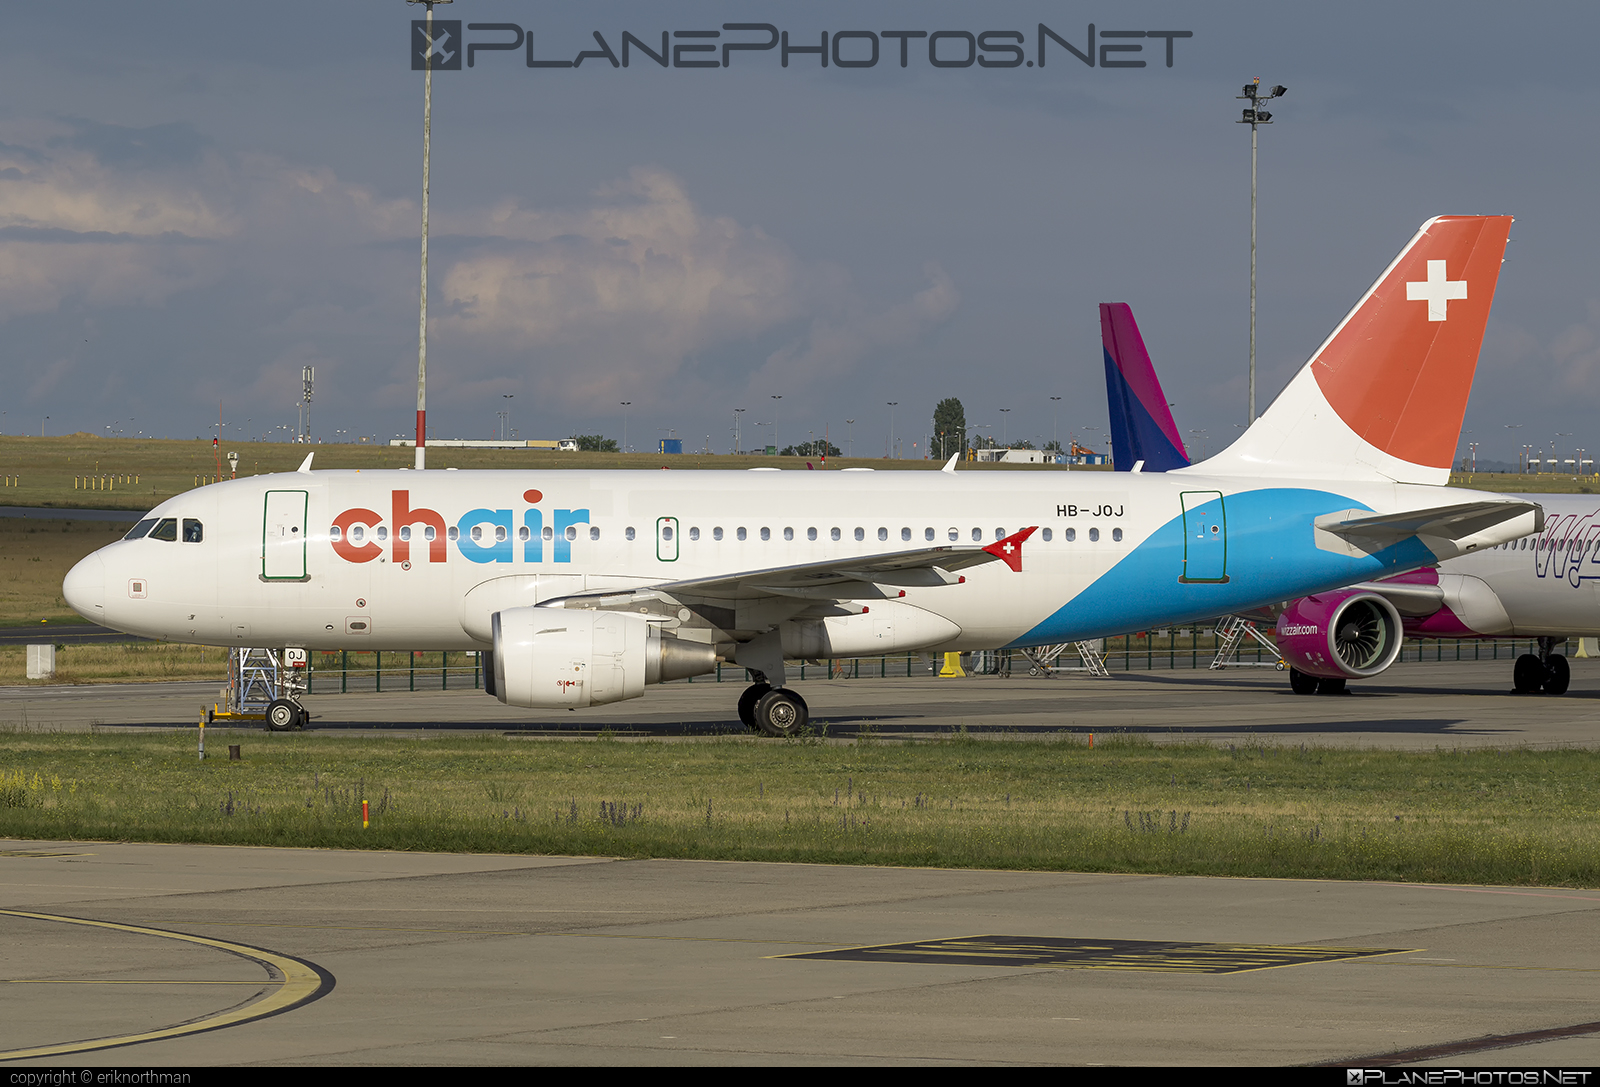 Airbus A319-112 - HB-JOJ operated by Chair Airlines #a319 #a320family #airbus #airbus319 #chairairlines